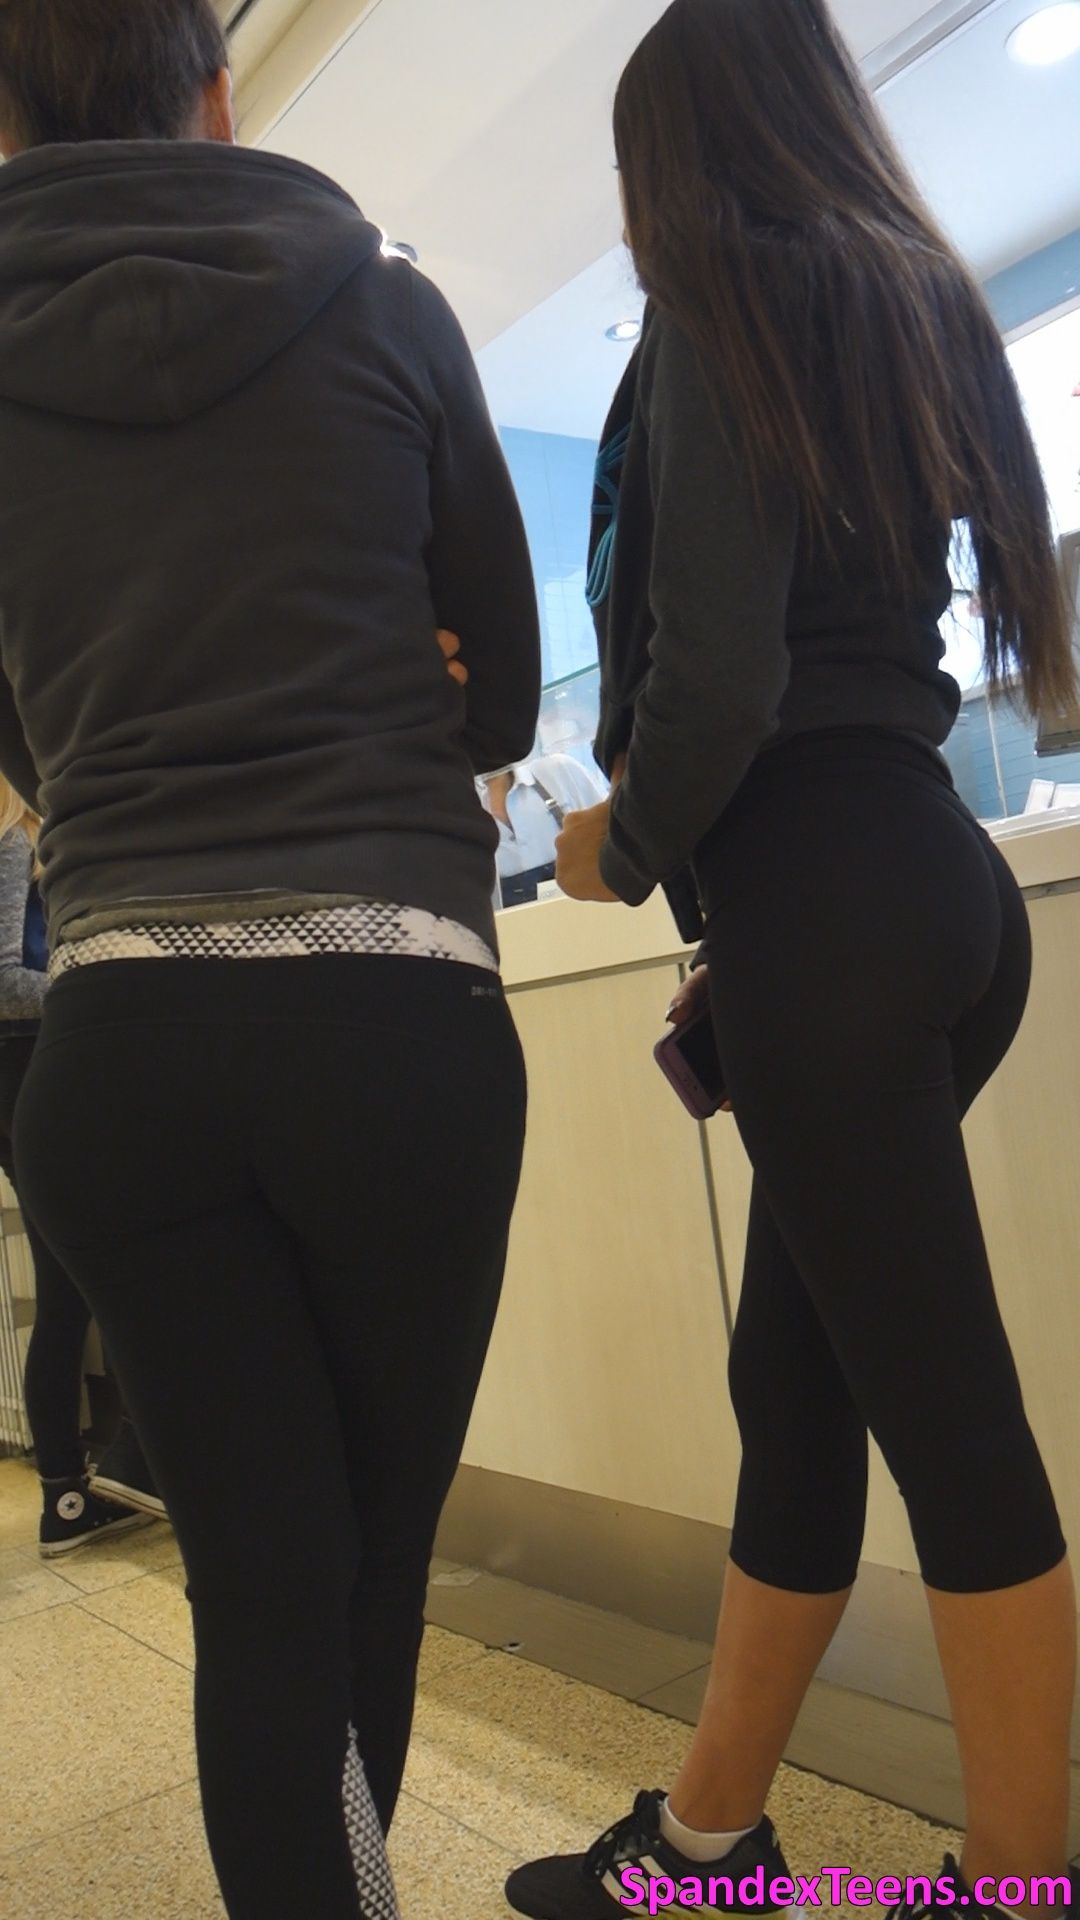 Spandex Teens  Hd Candid Videos  Page 7  Leggings -8055